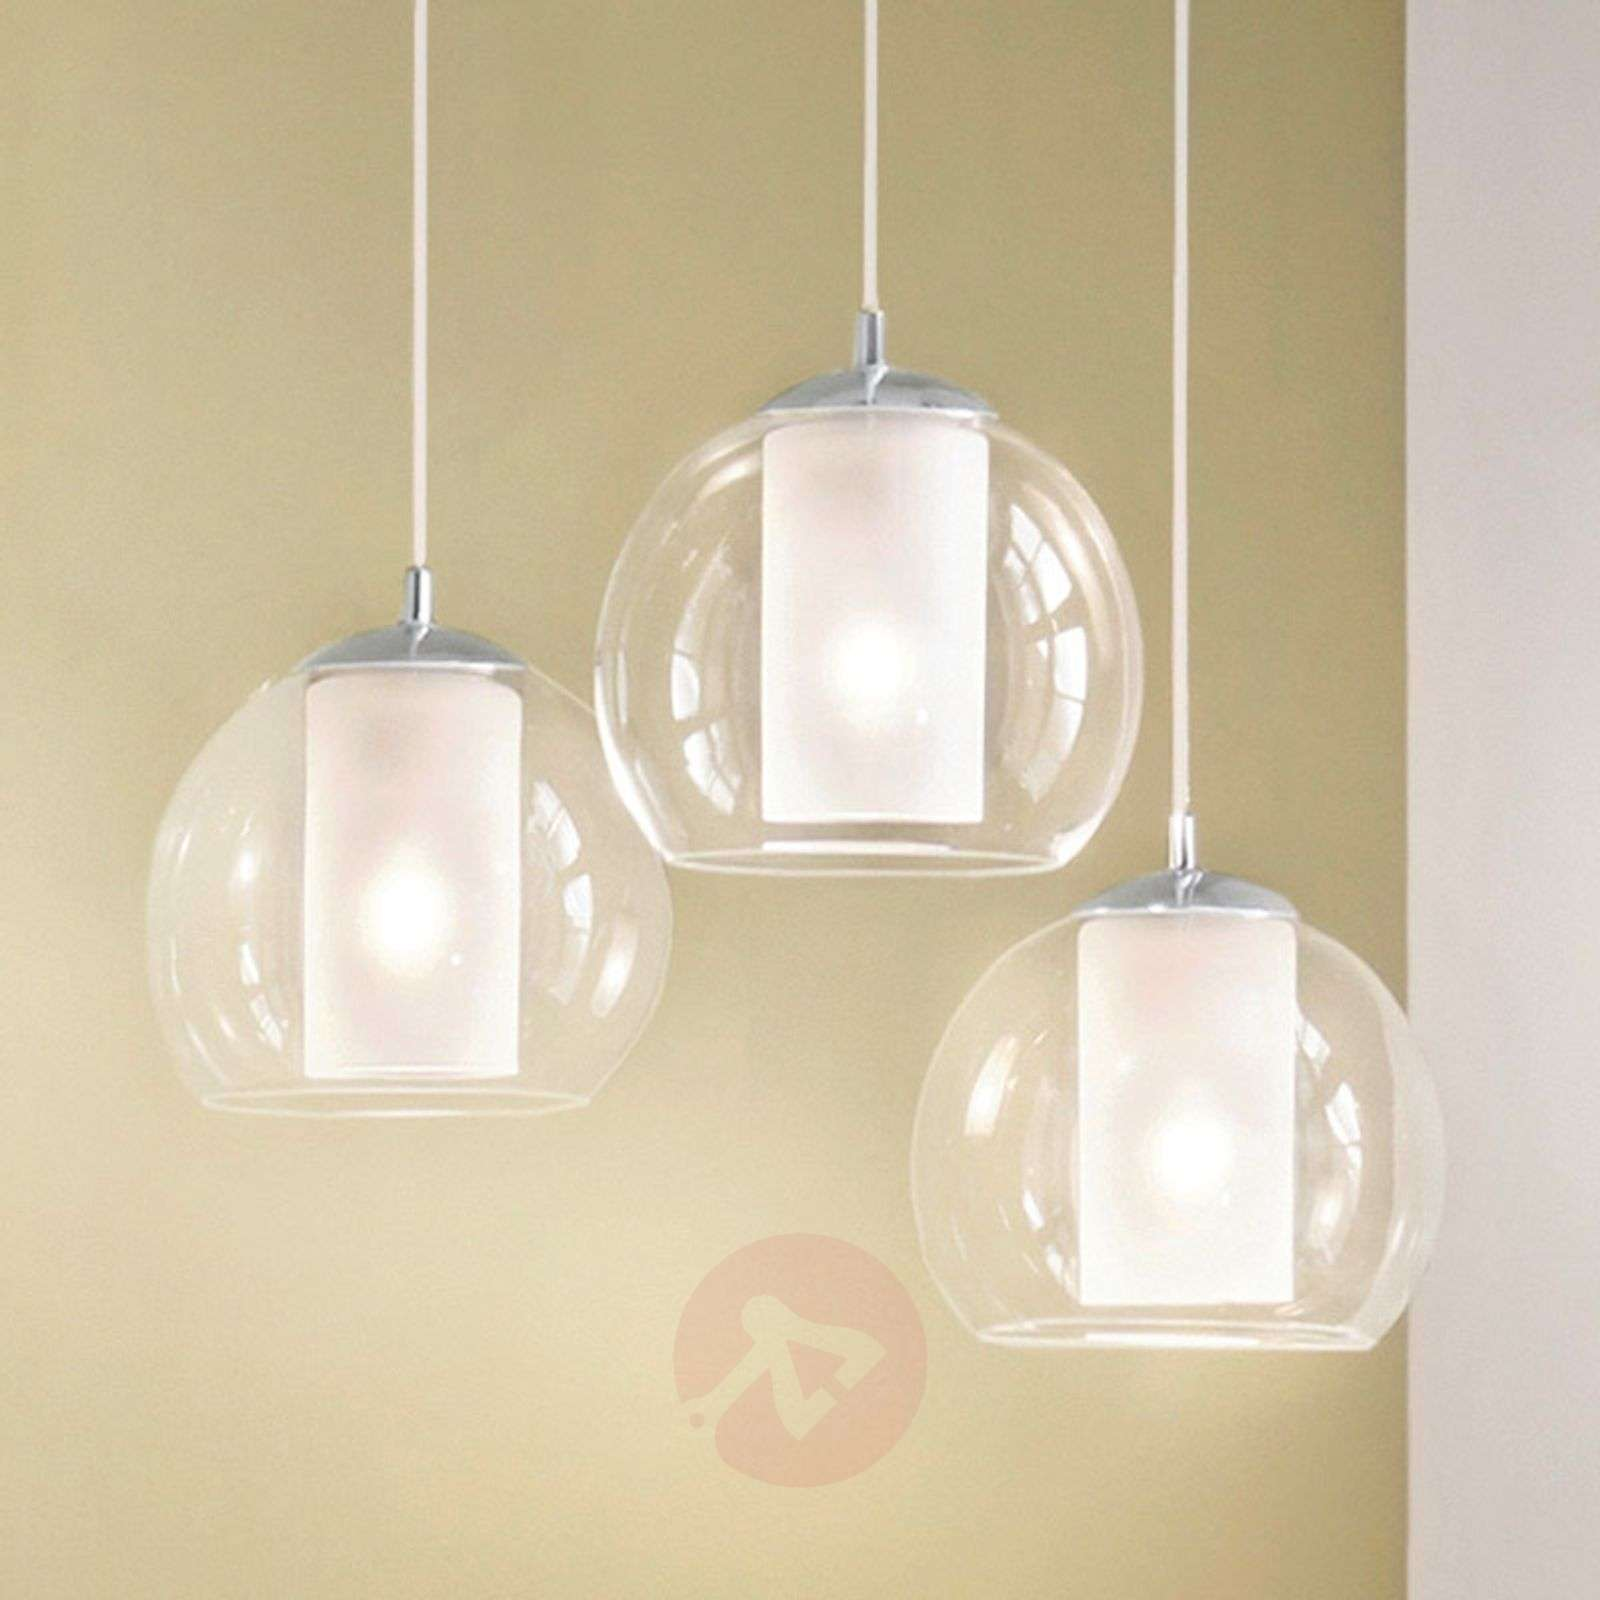 Bolsano 3-bulb glass hanging light-3031644-02